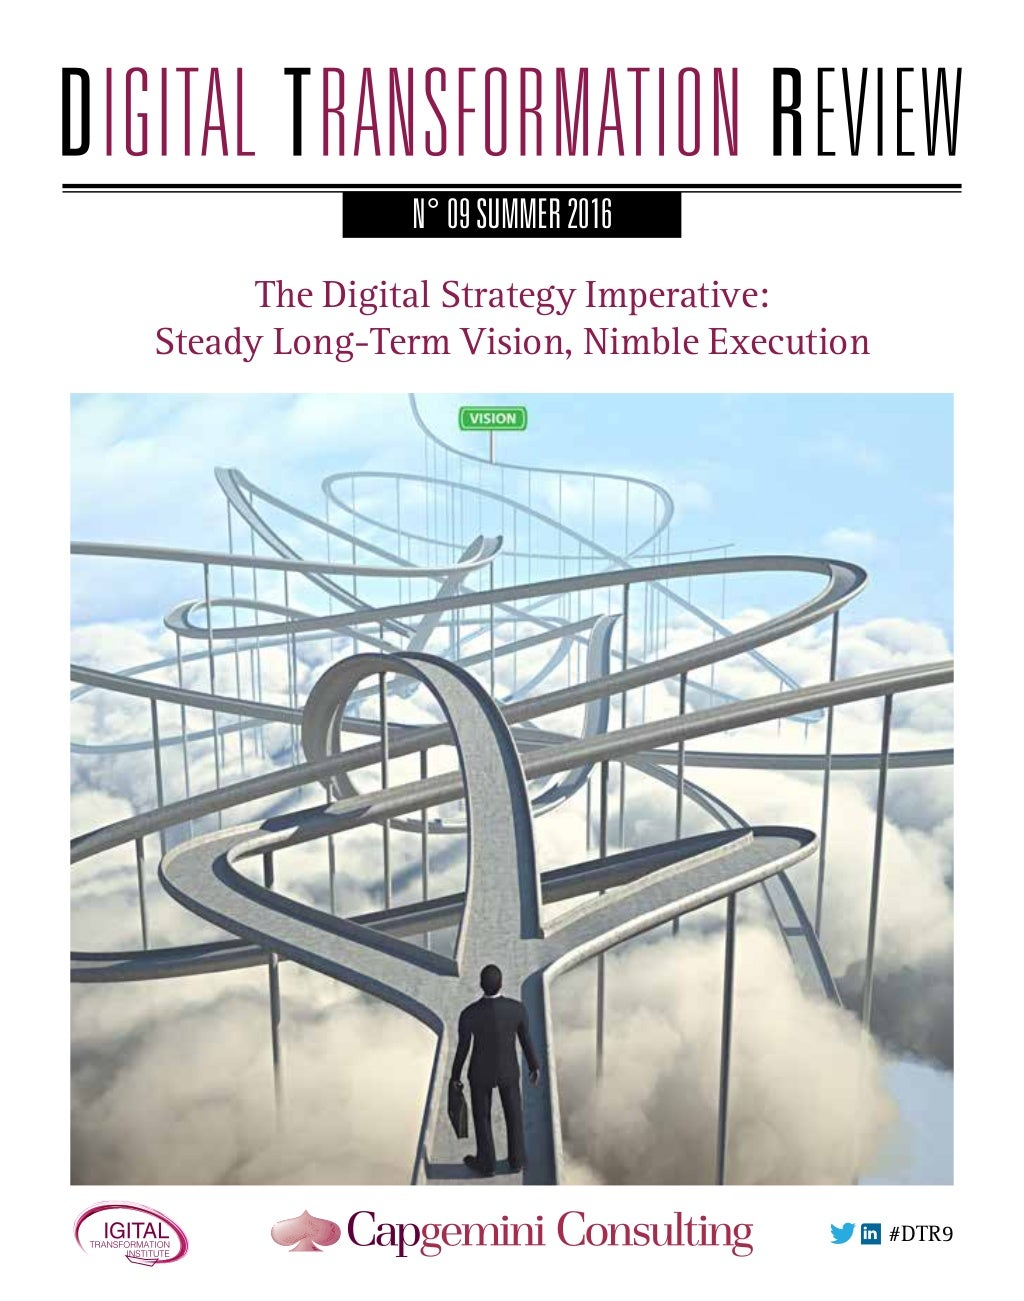 Digital Transformation Review 9: The Digital Strategy Imperative #DTR9